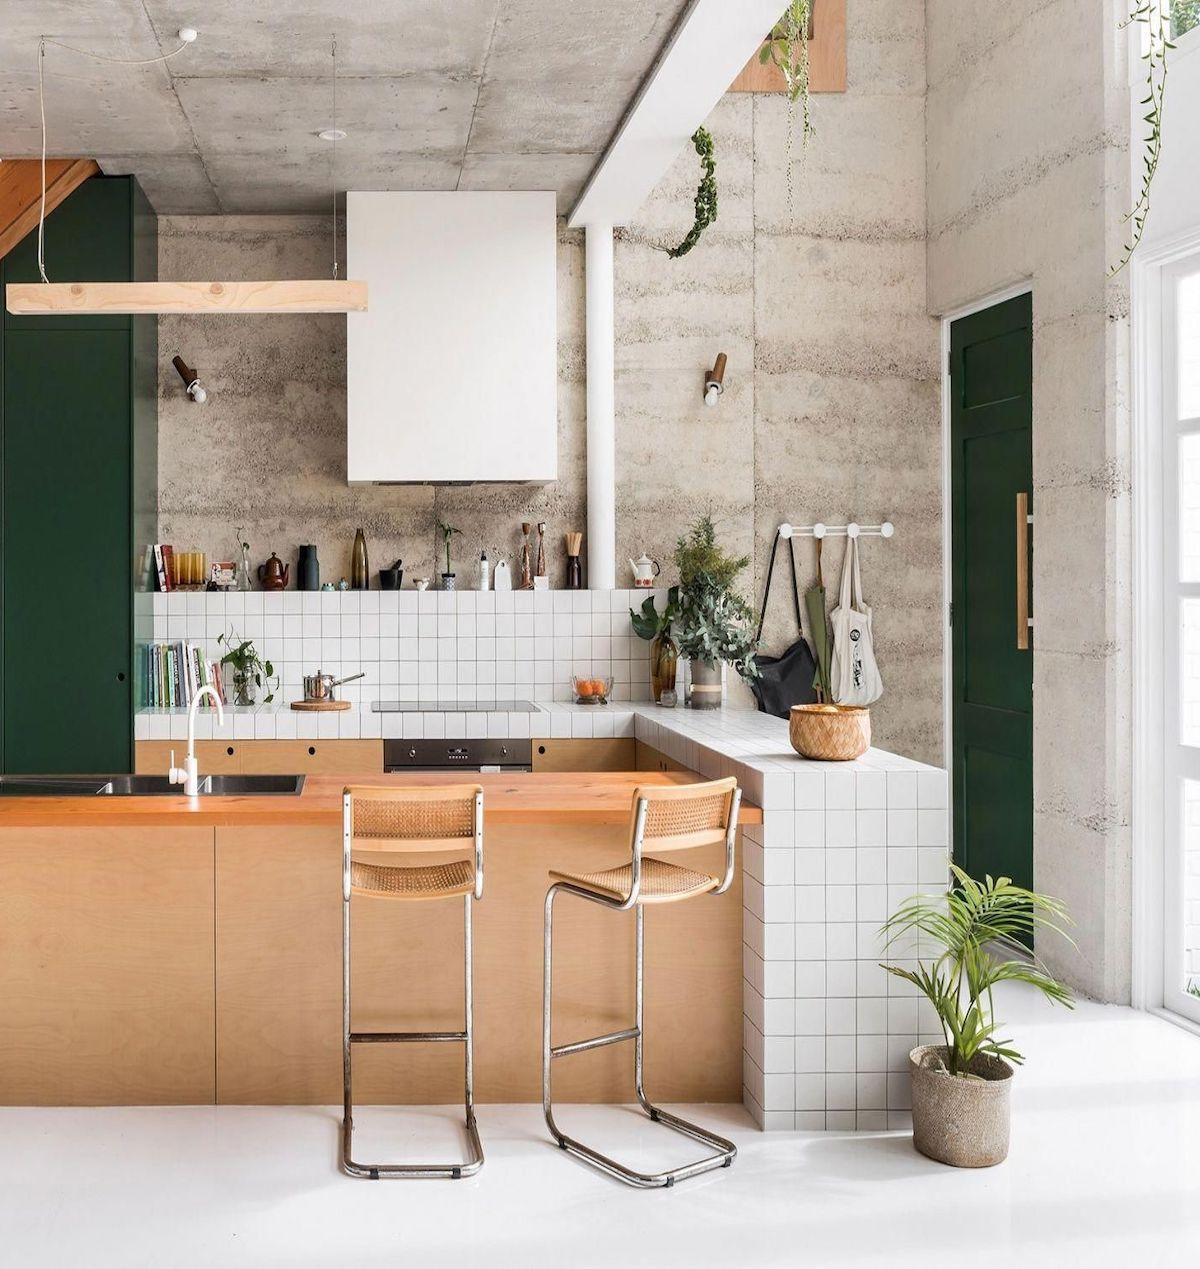 Déco couleur vert sapin  Kitchen design, Home decor kitchen